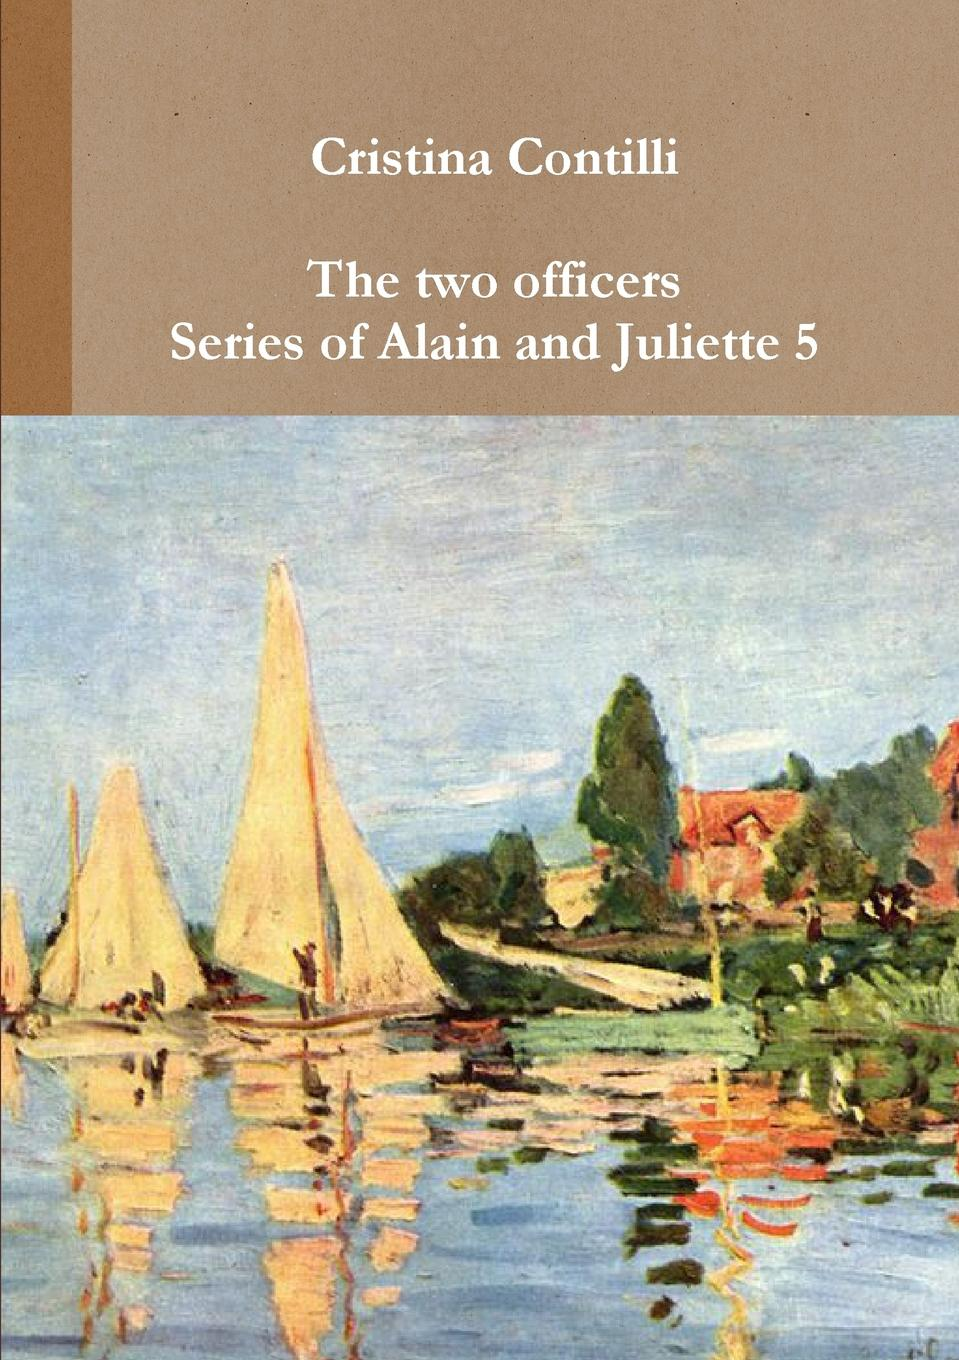 Cristina Contilli The two officers Series of Alain and Juliette 5